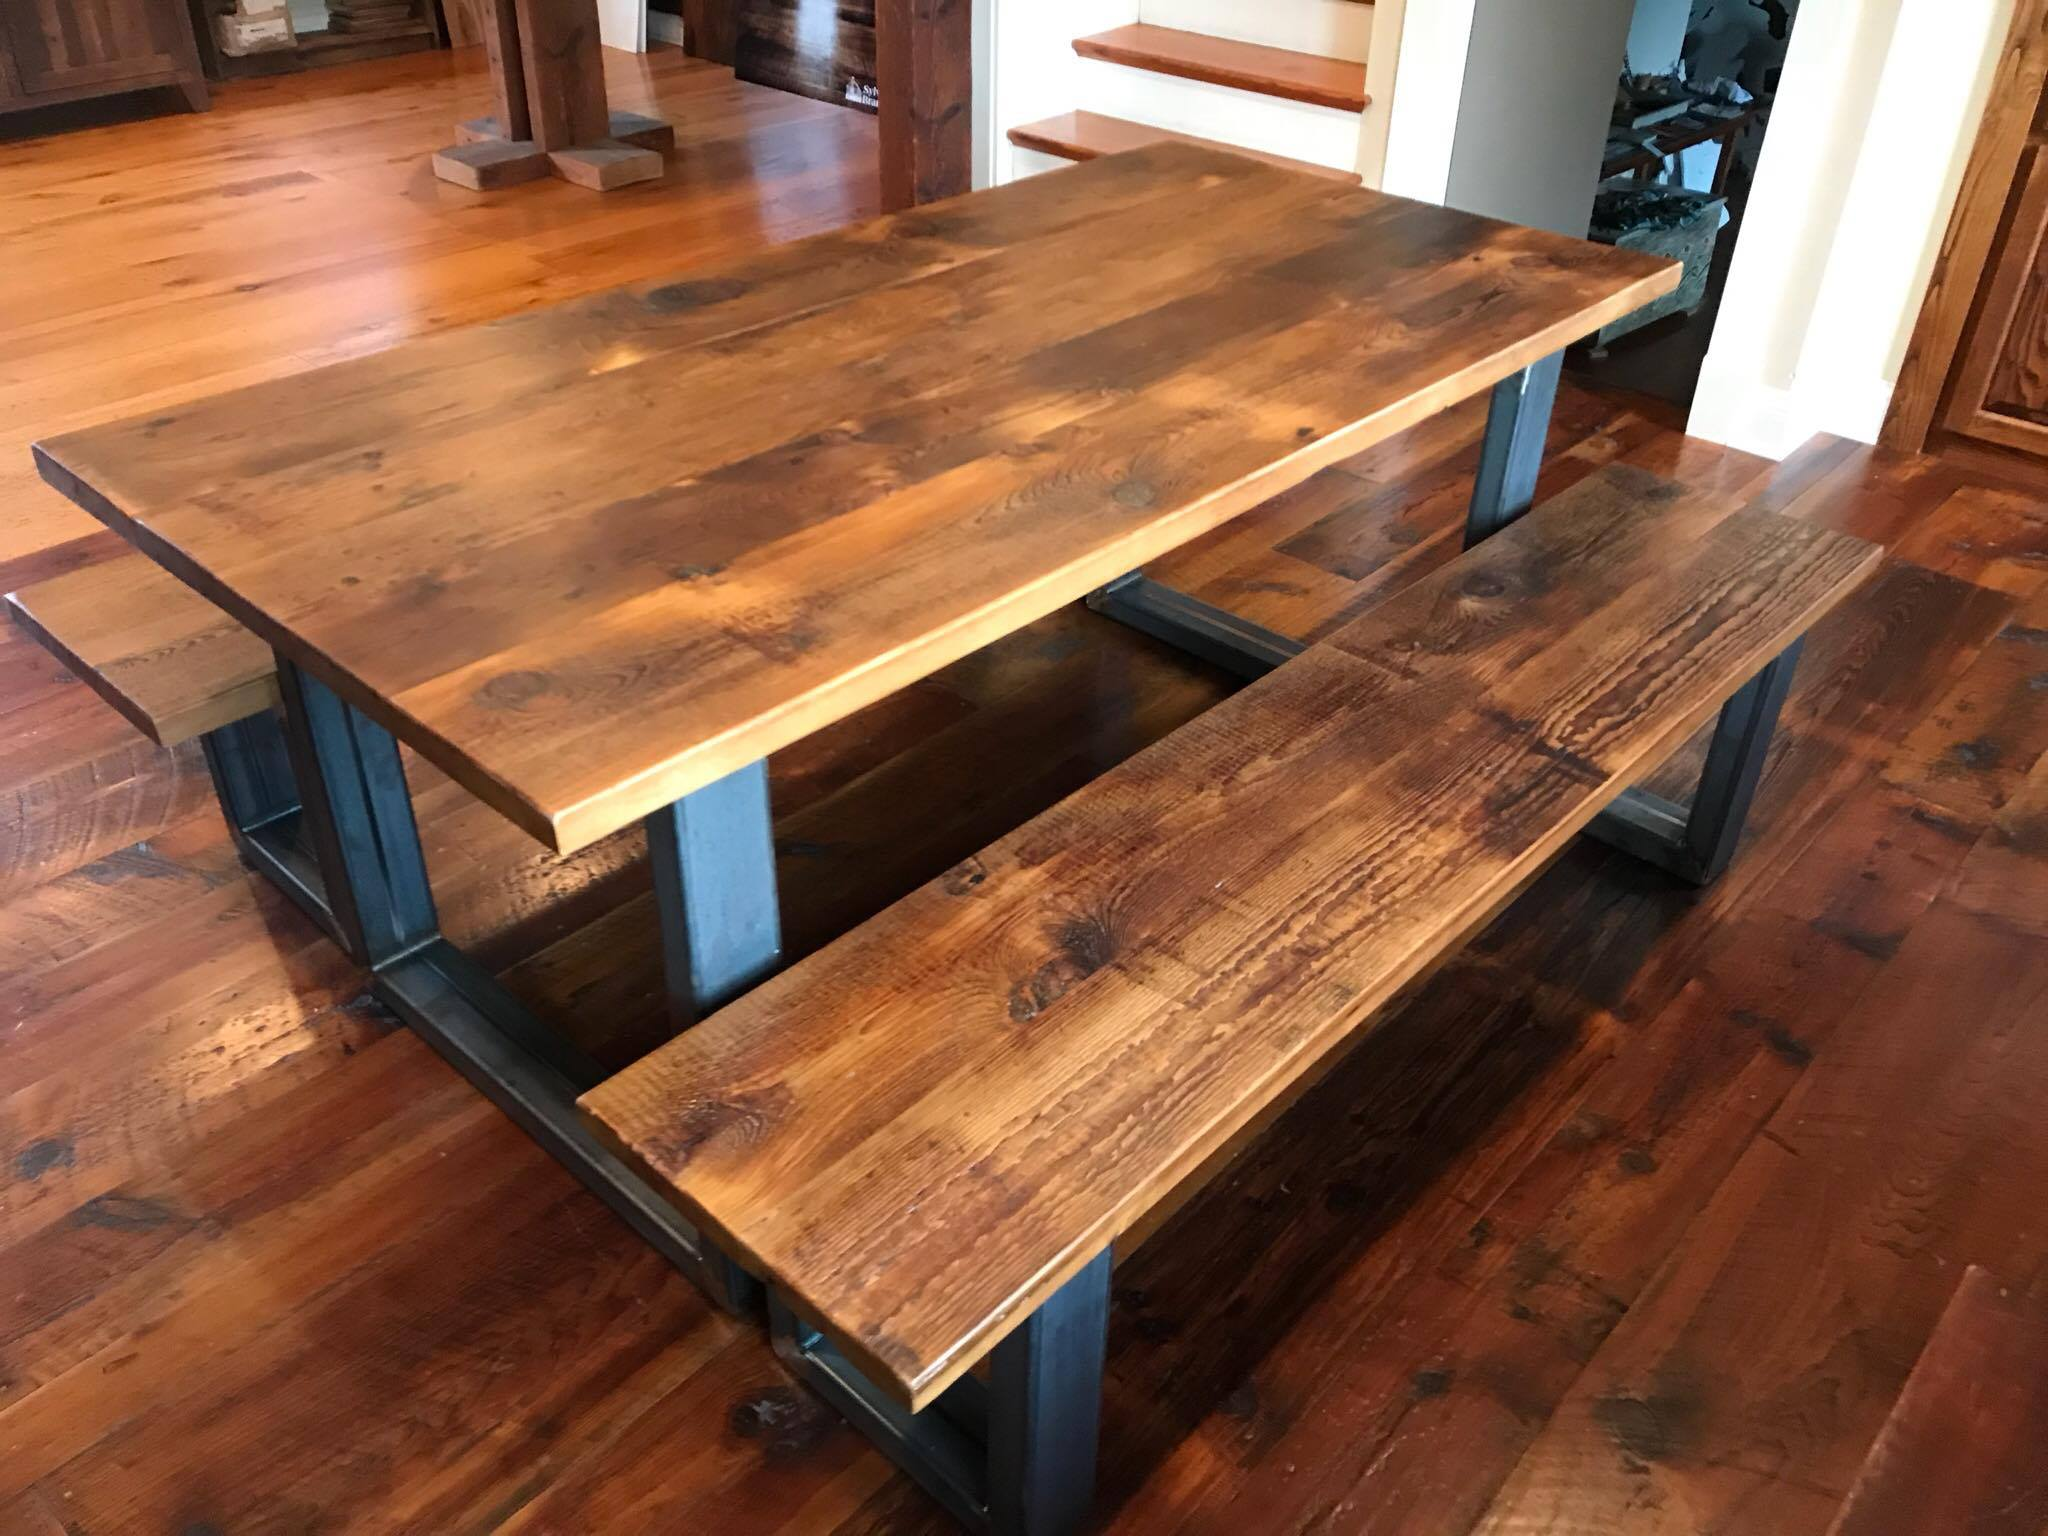 Prime Reclaimed Wood Plank Tables And Countertops Sylvan Brandt Download Free Architecture Designs Scobabritishbridgeorg